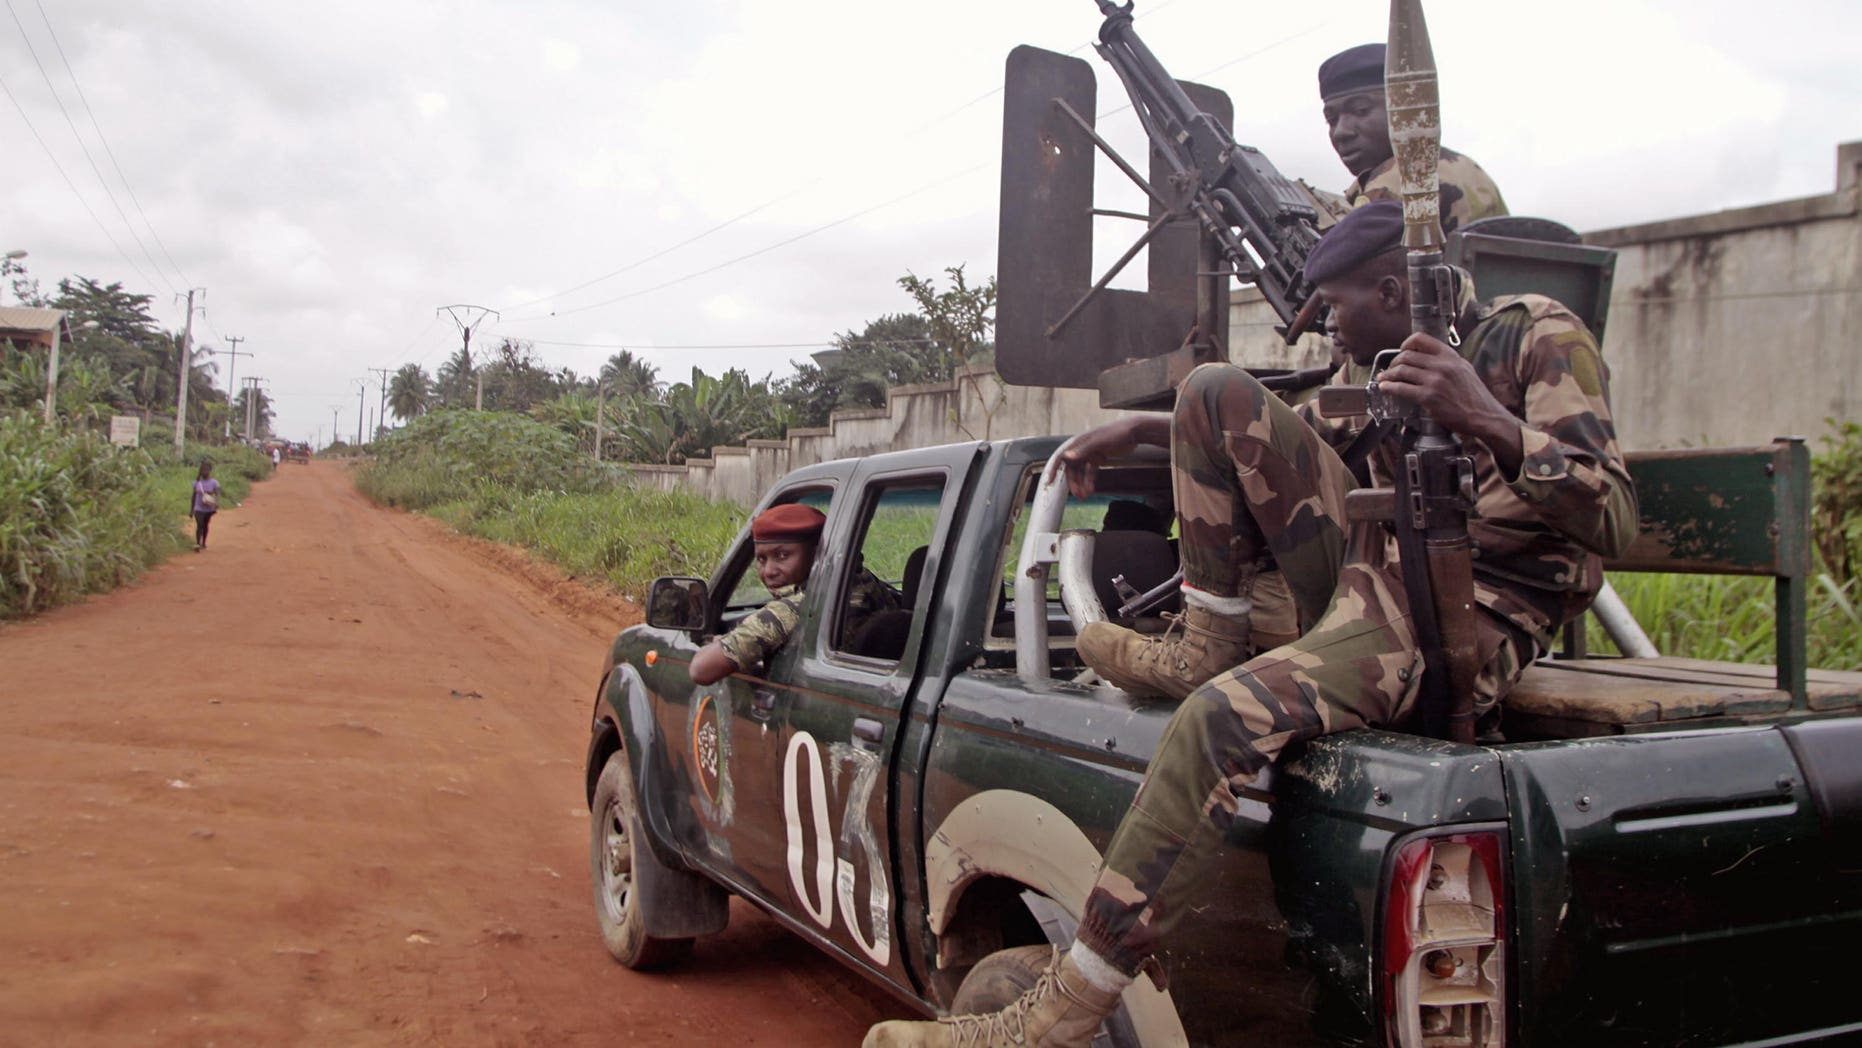 Aug. 6, 2012: Ivory Coast troops patrol around the Cocody area in the city of Abidjan, Ivory Coast. An Ivory Coast military official says seven soldiers have been killed in another attack by gunmen on a military camp in the commercial capital, Abidjan.